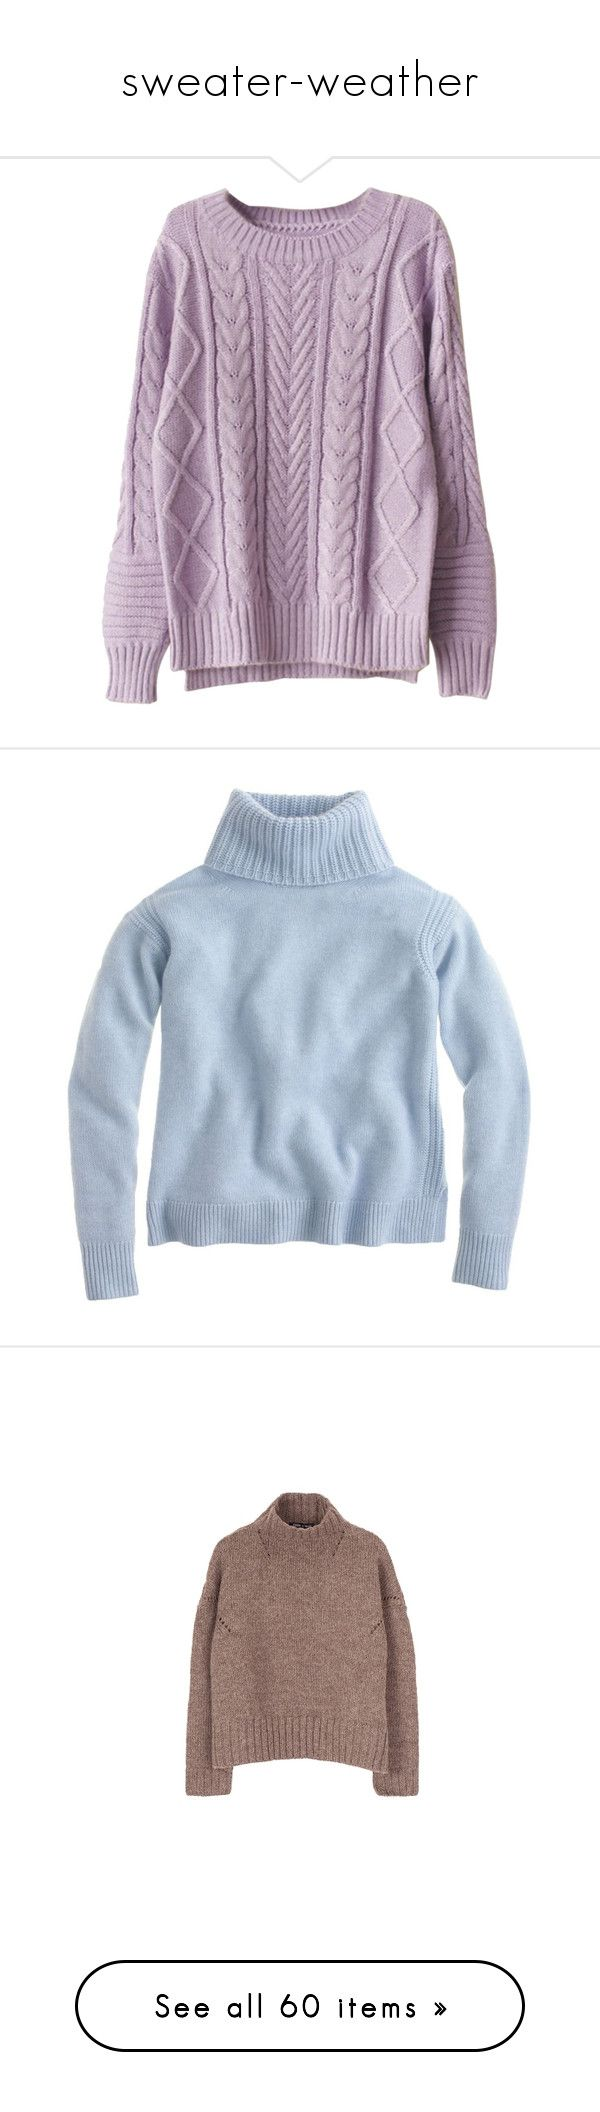 """sweater-weather"" by homingpigeon on Polyvore featuring tops, sweaters, shirts, jumpers, purple, purple jumper, shirt sweater, chunky cable knit sweater, purple shirt and purple cable knit sweater"